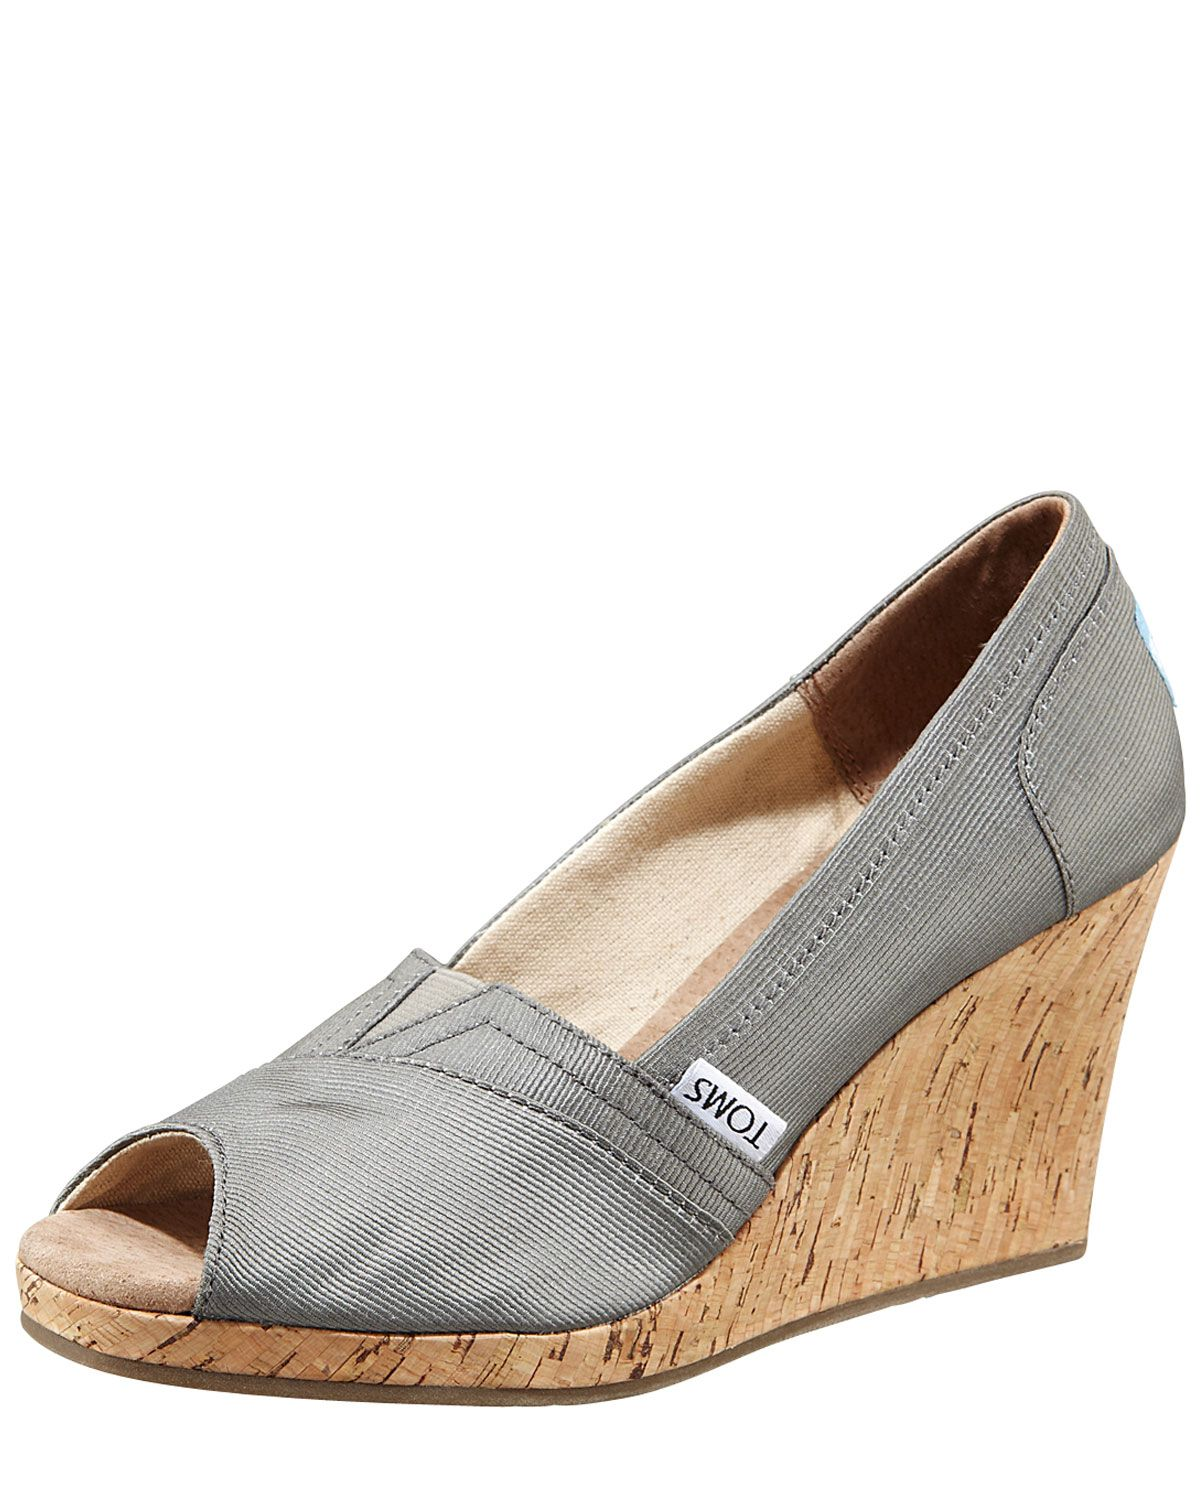 14++ Toms wedding shoes wedges ideas in 2021